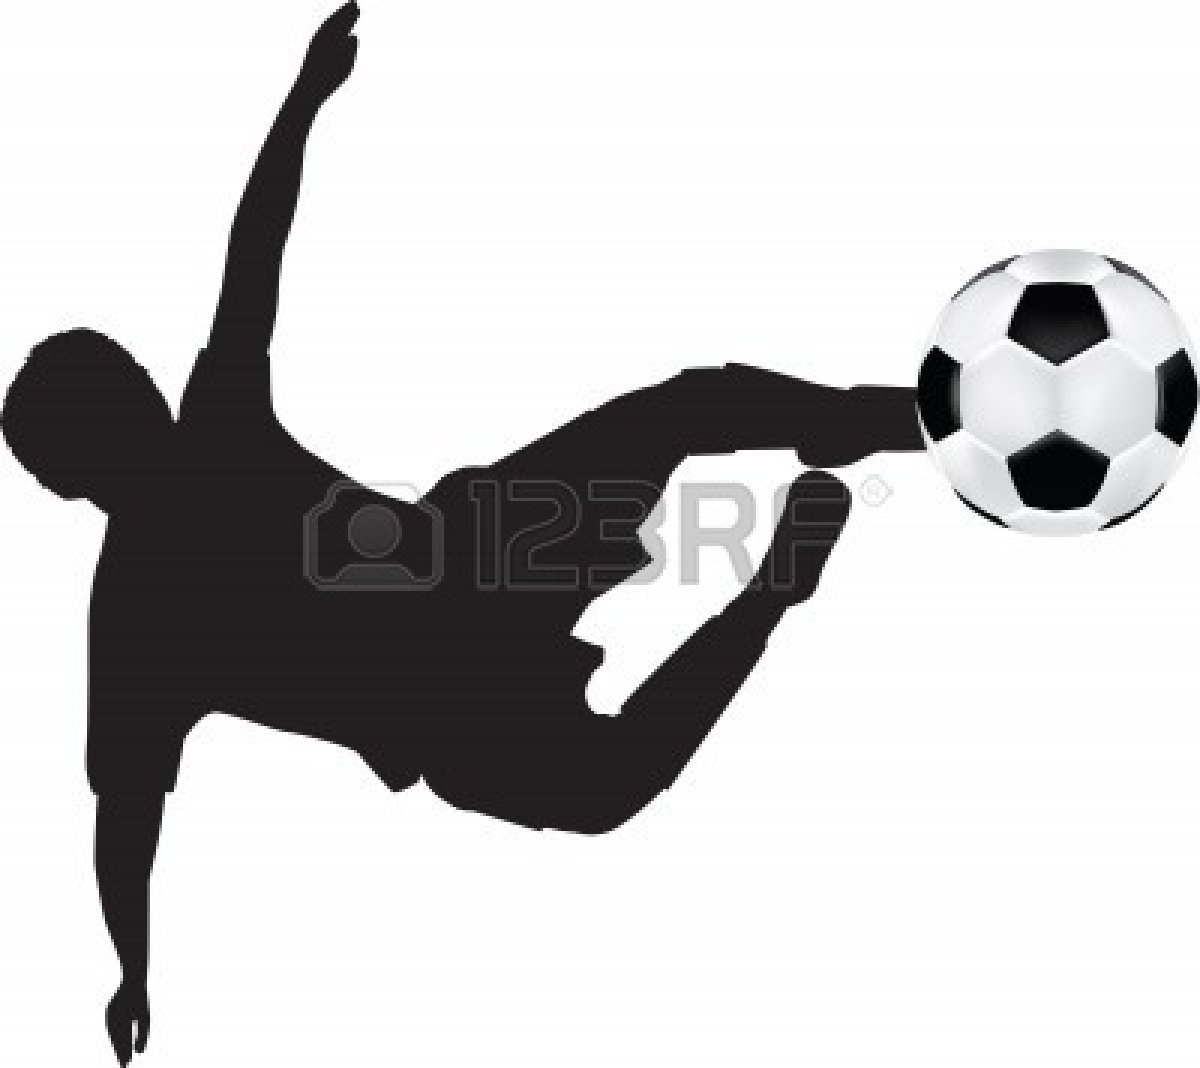 Silhouettes Girl Soccer Player Kicking Ball